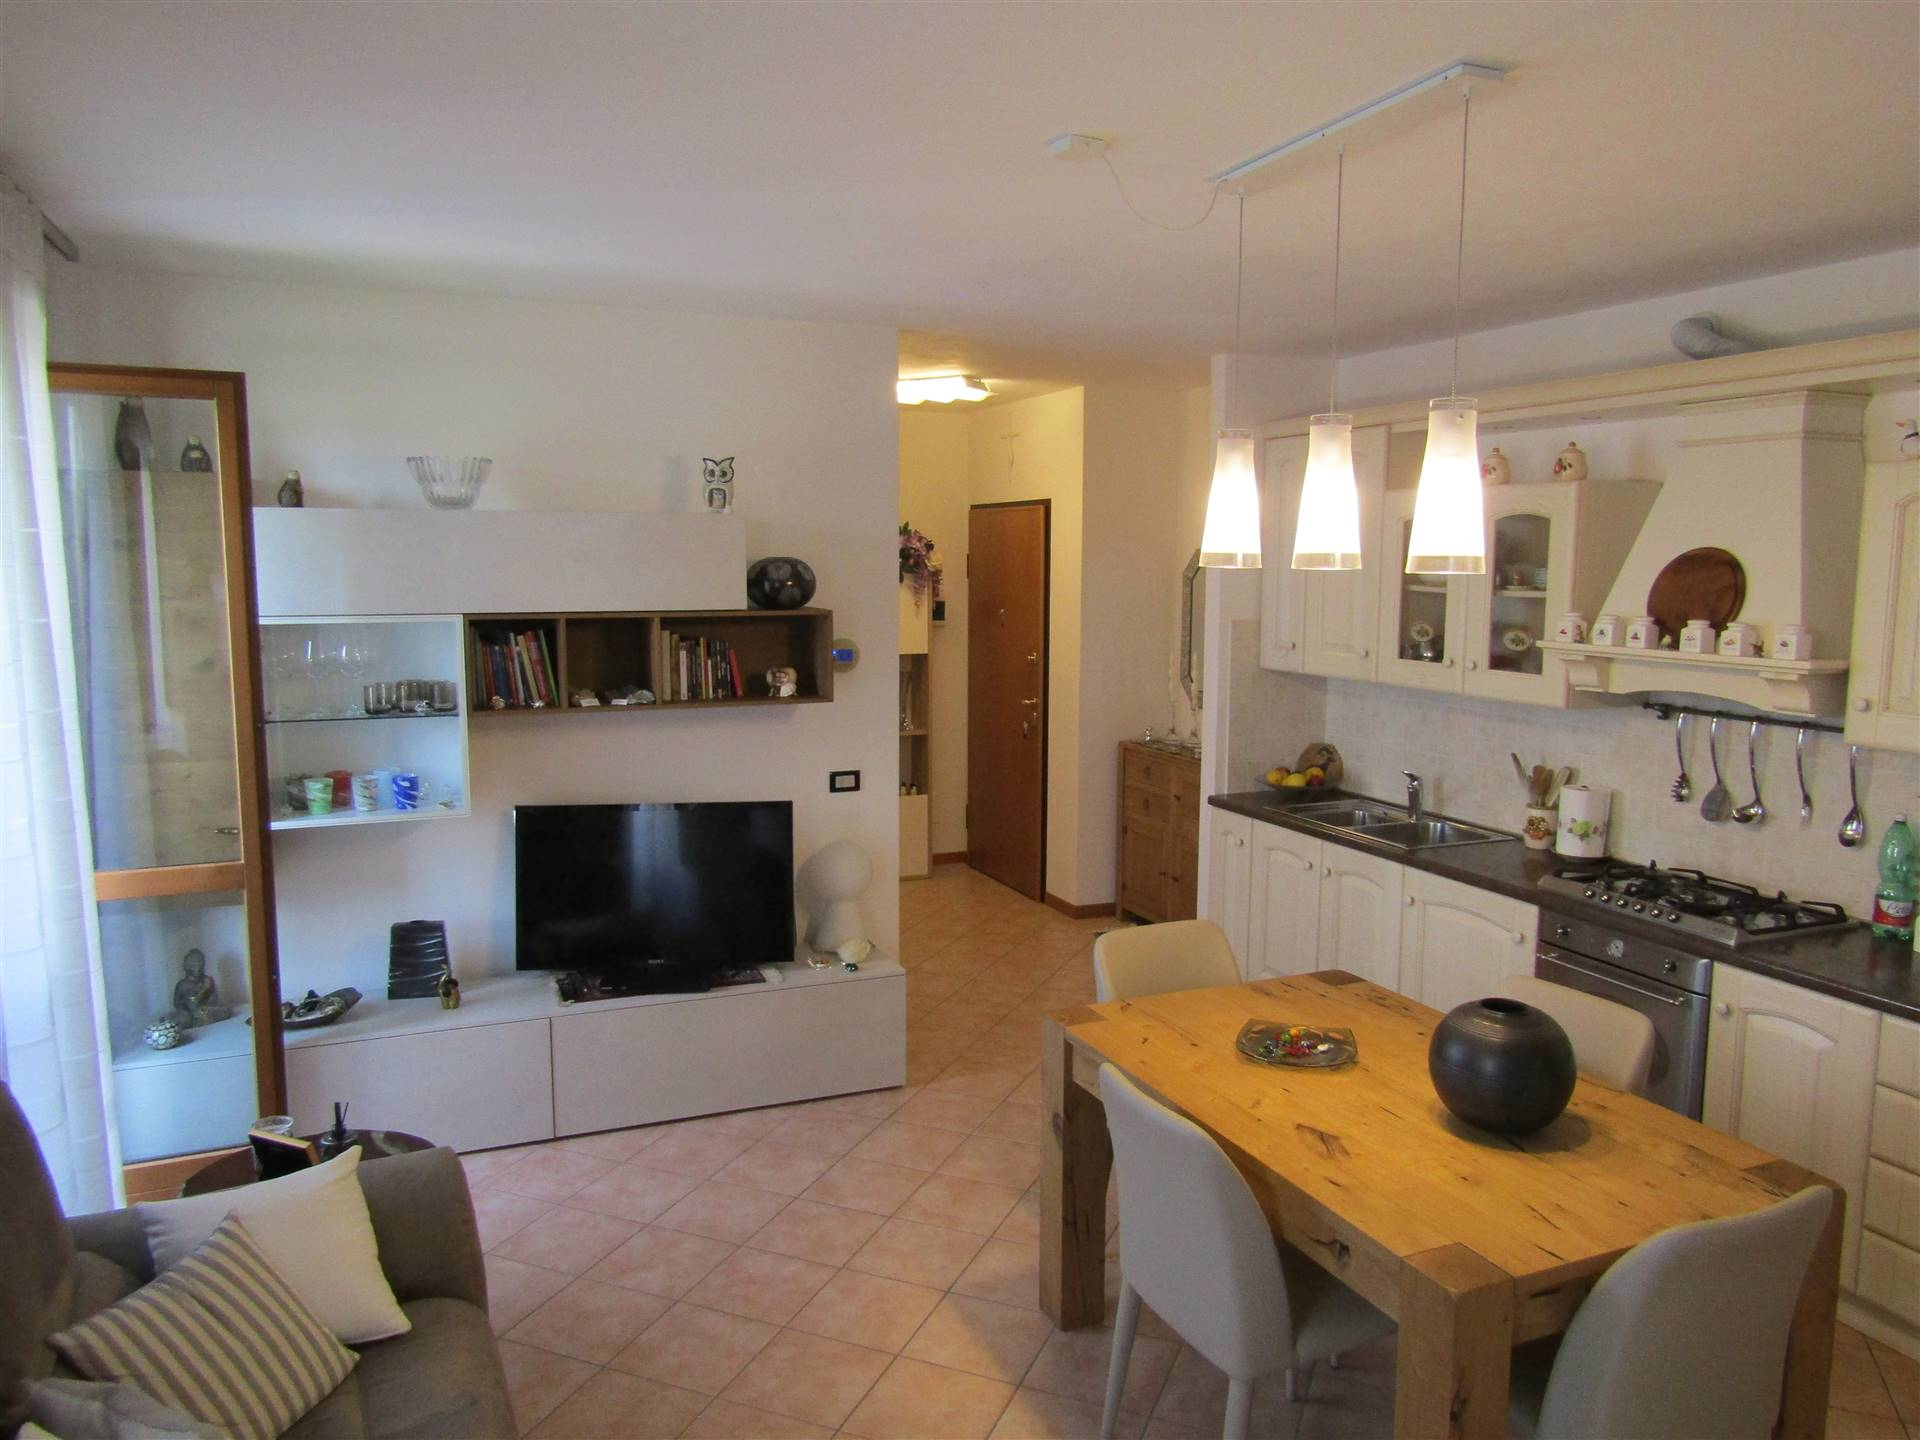 VETREGO, MIRANO, Apartment for sale, Habitable, Heating Individual heating system, Energetic class: G, placed at 1° on 3, composed by: 3 Rooms,